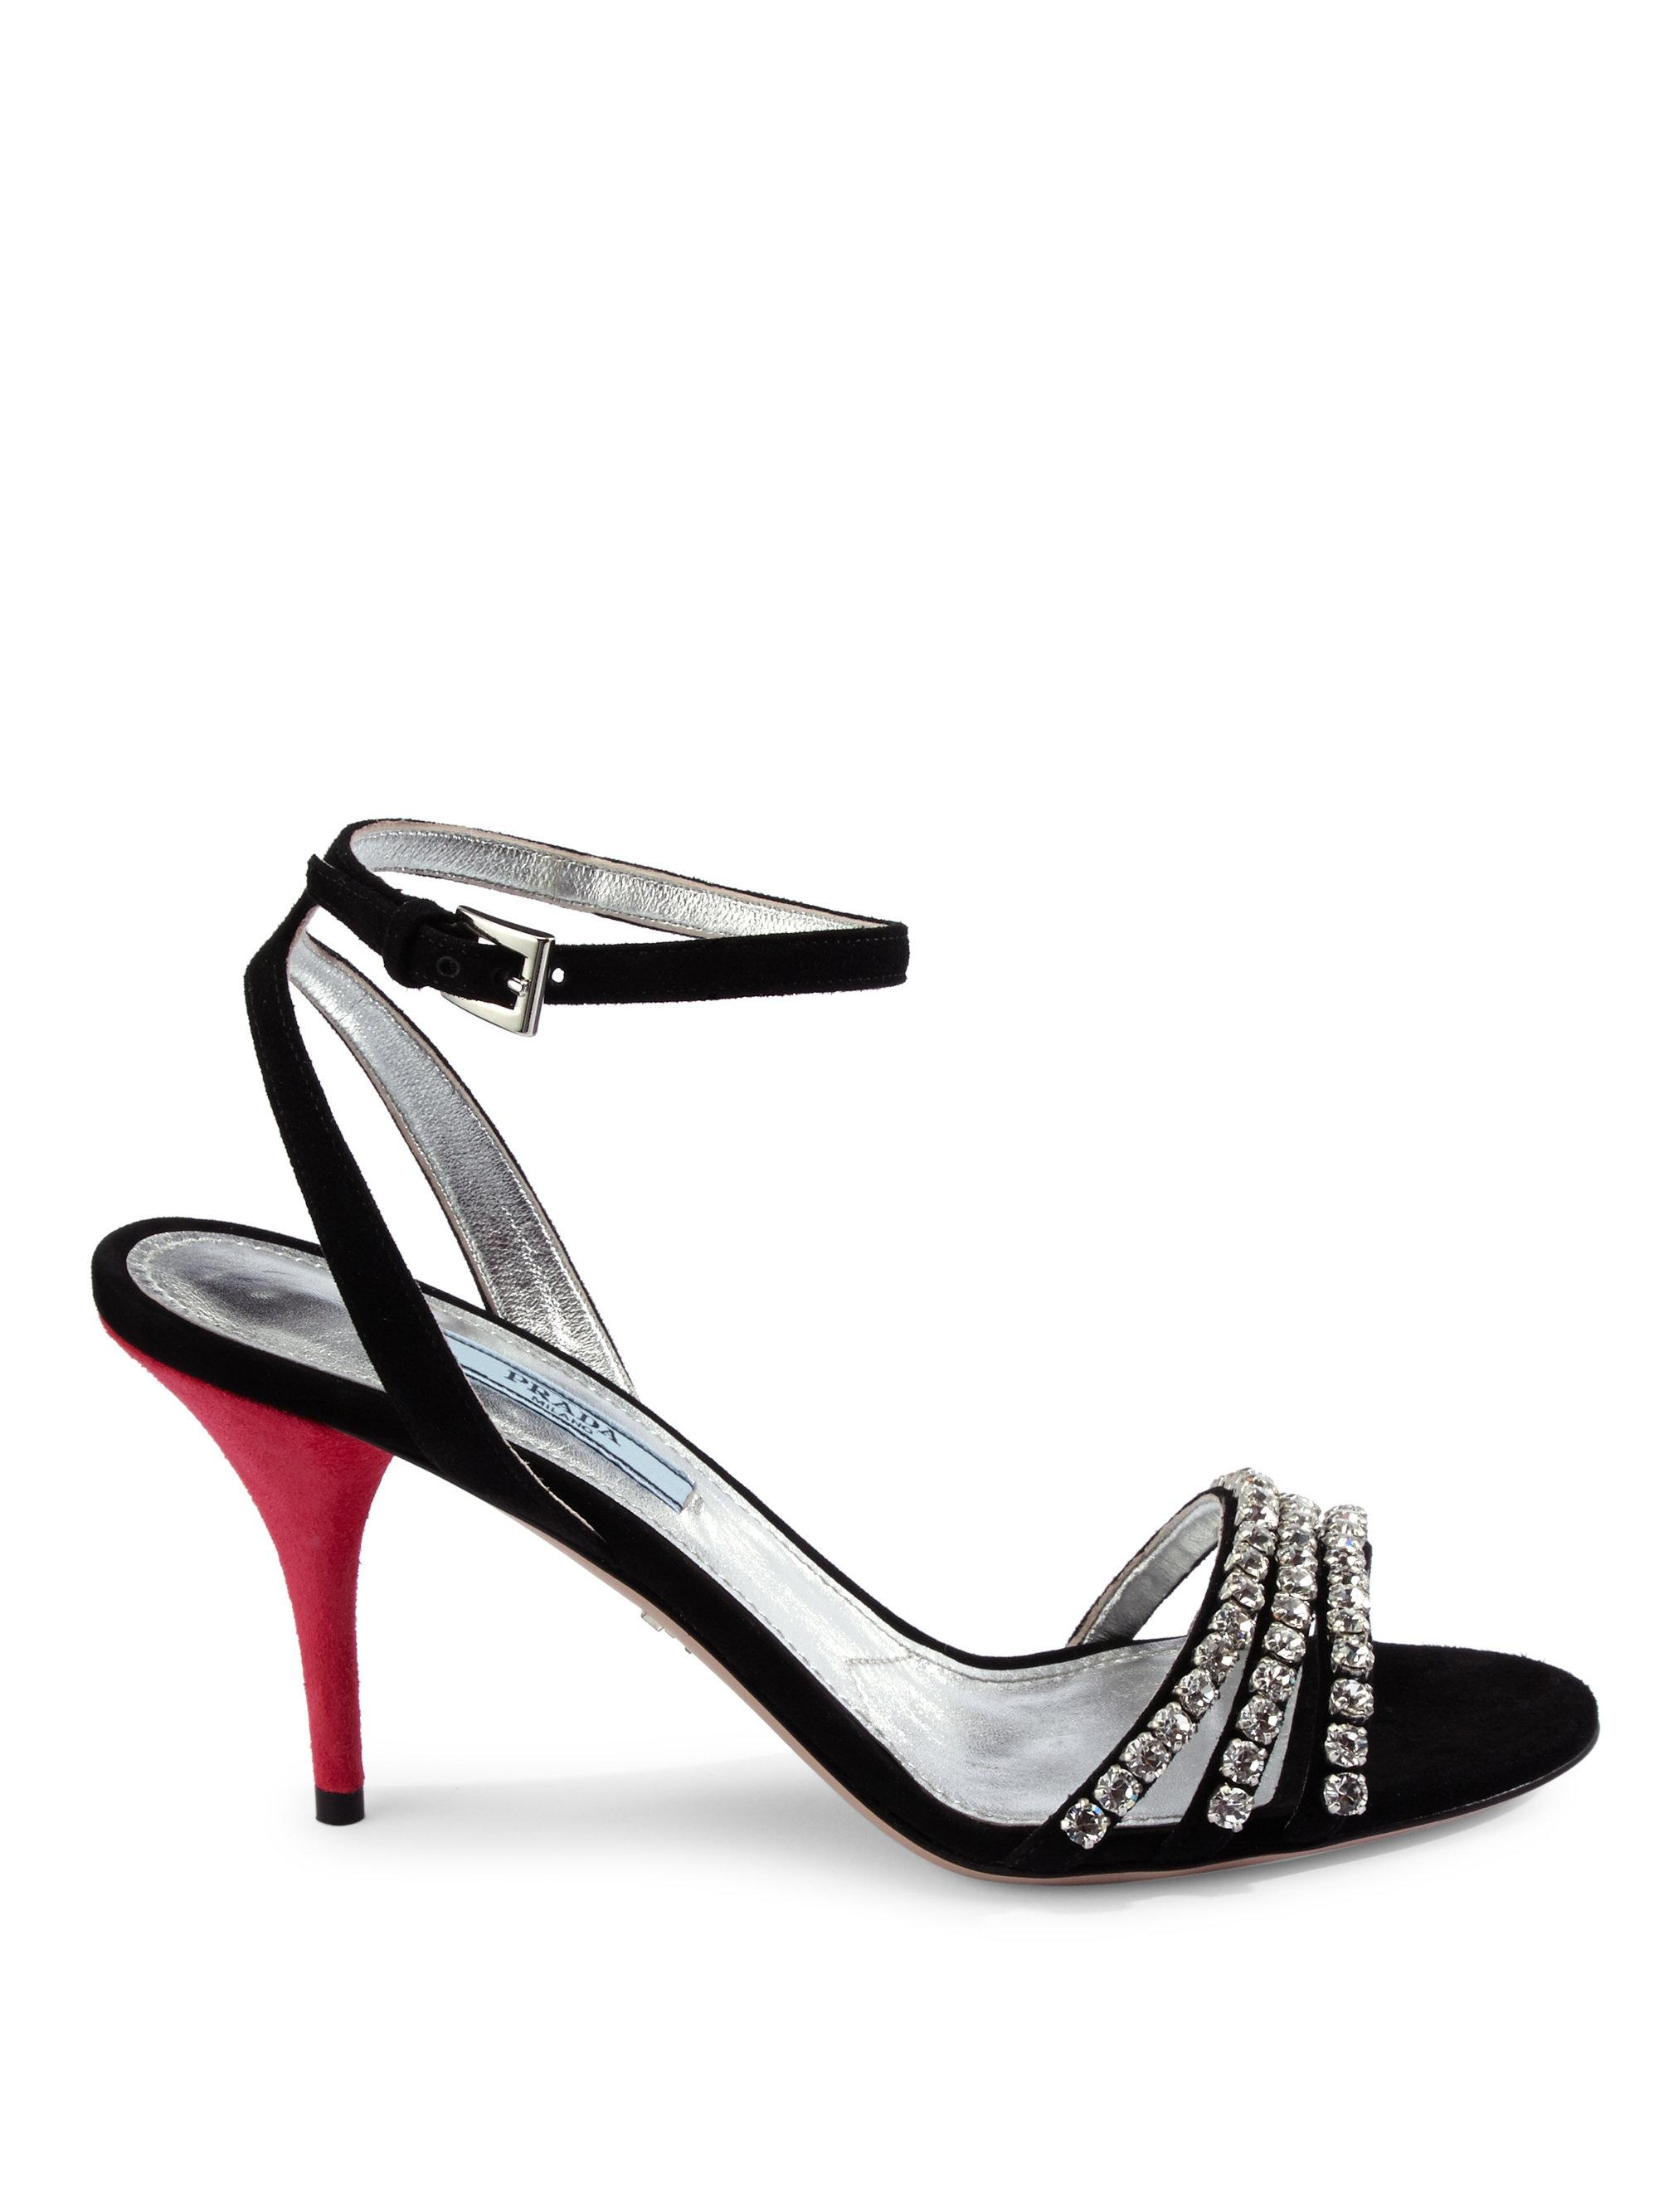 Prada Jeweled Suede Ankle-Strap Sandals xWXZkIdf